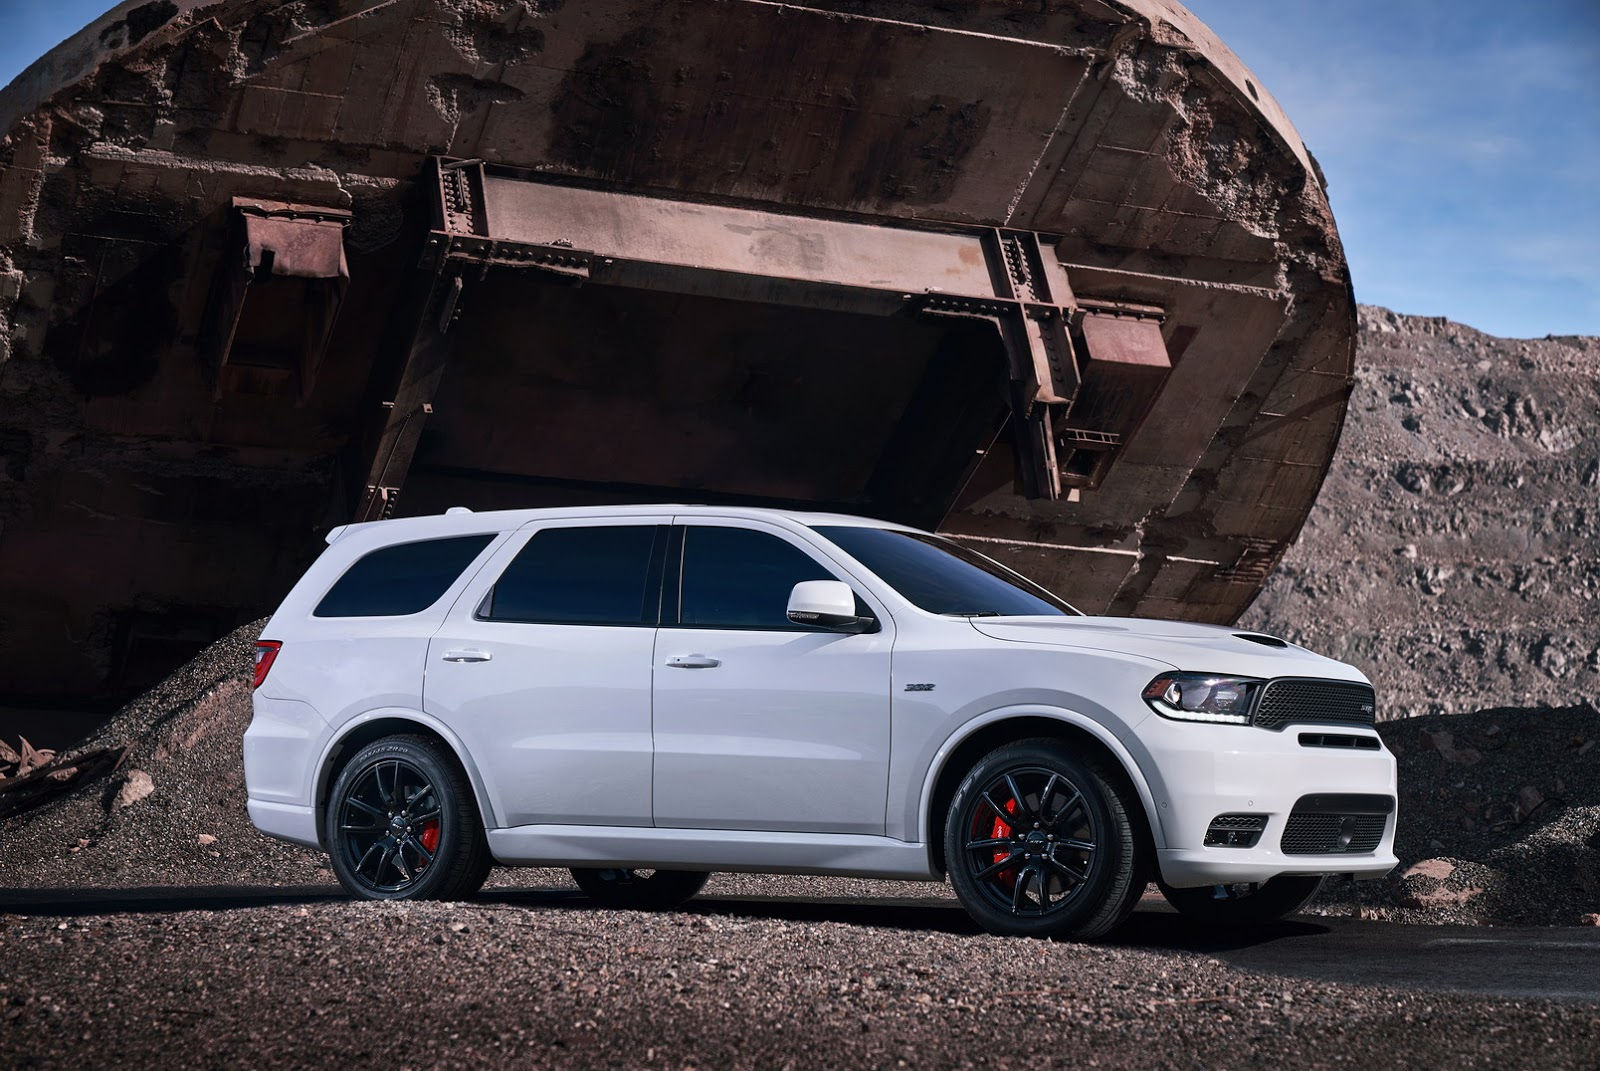 Dodge Durango SRT 2018 (17)